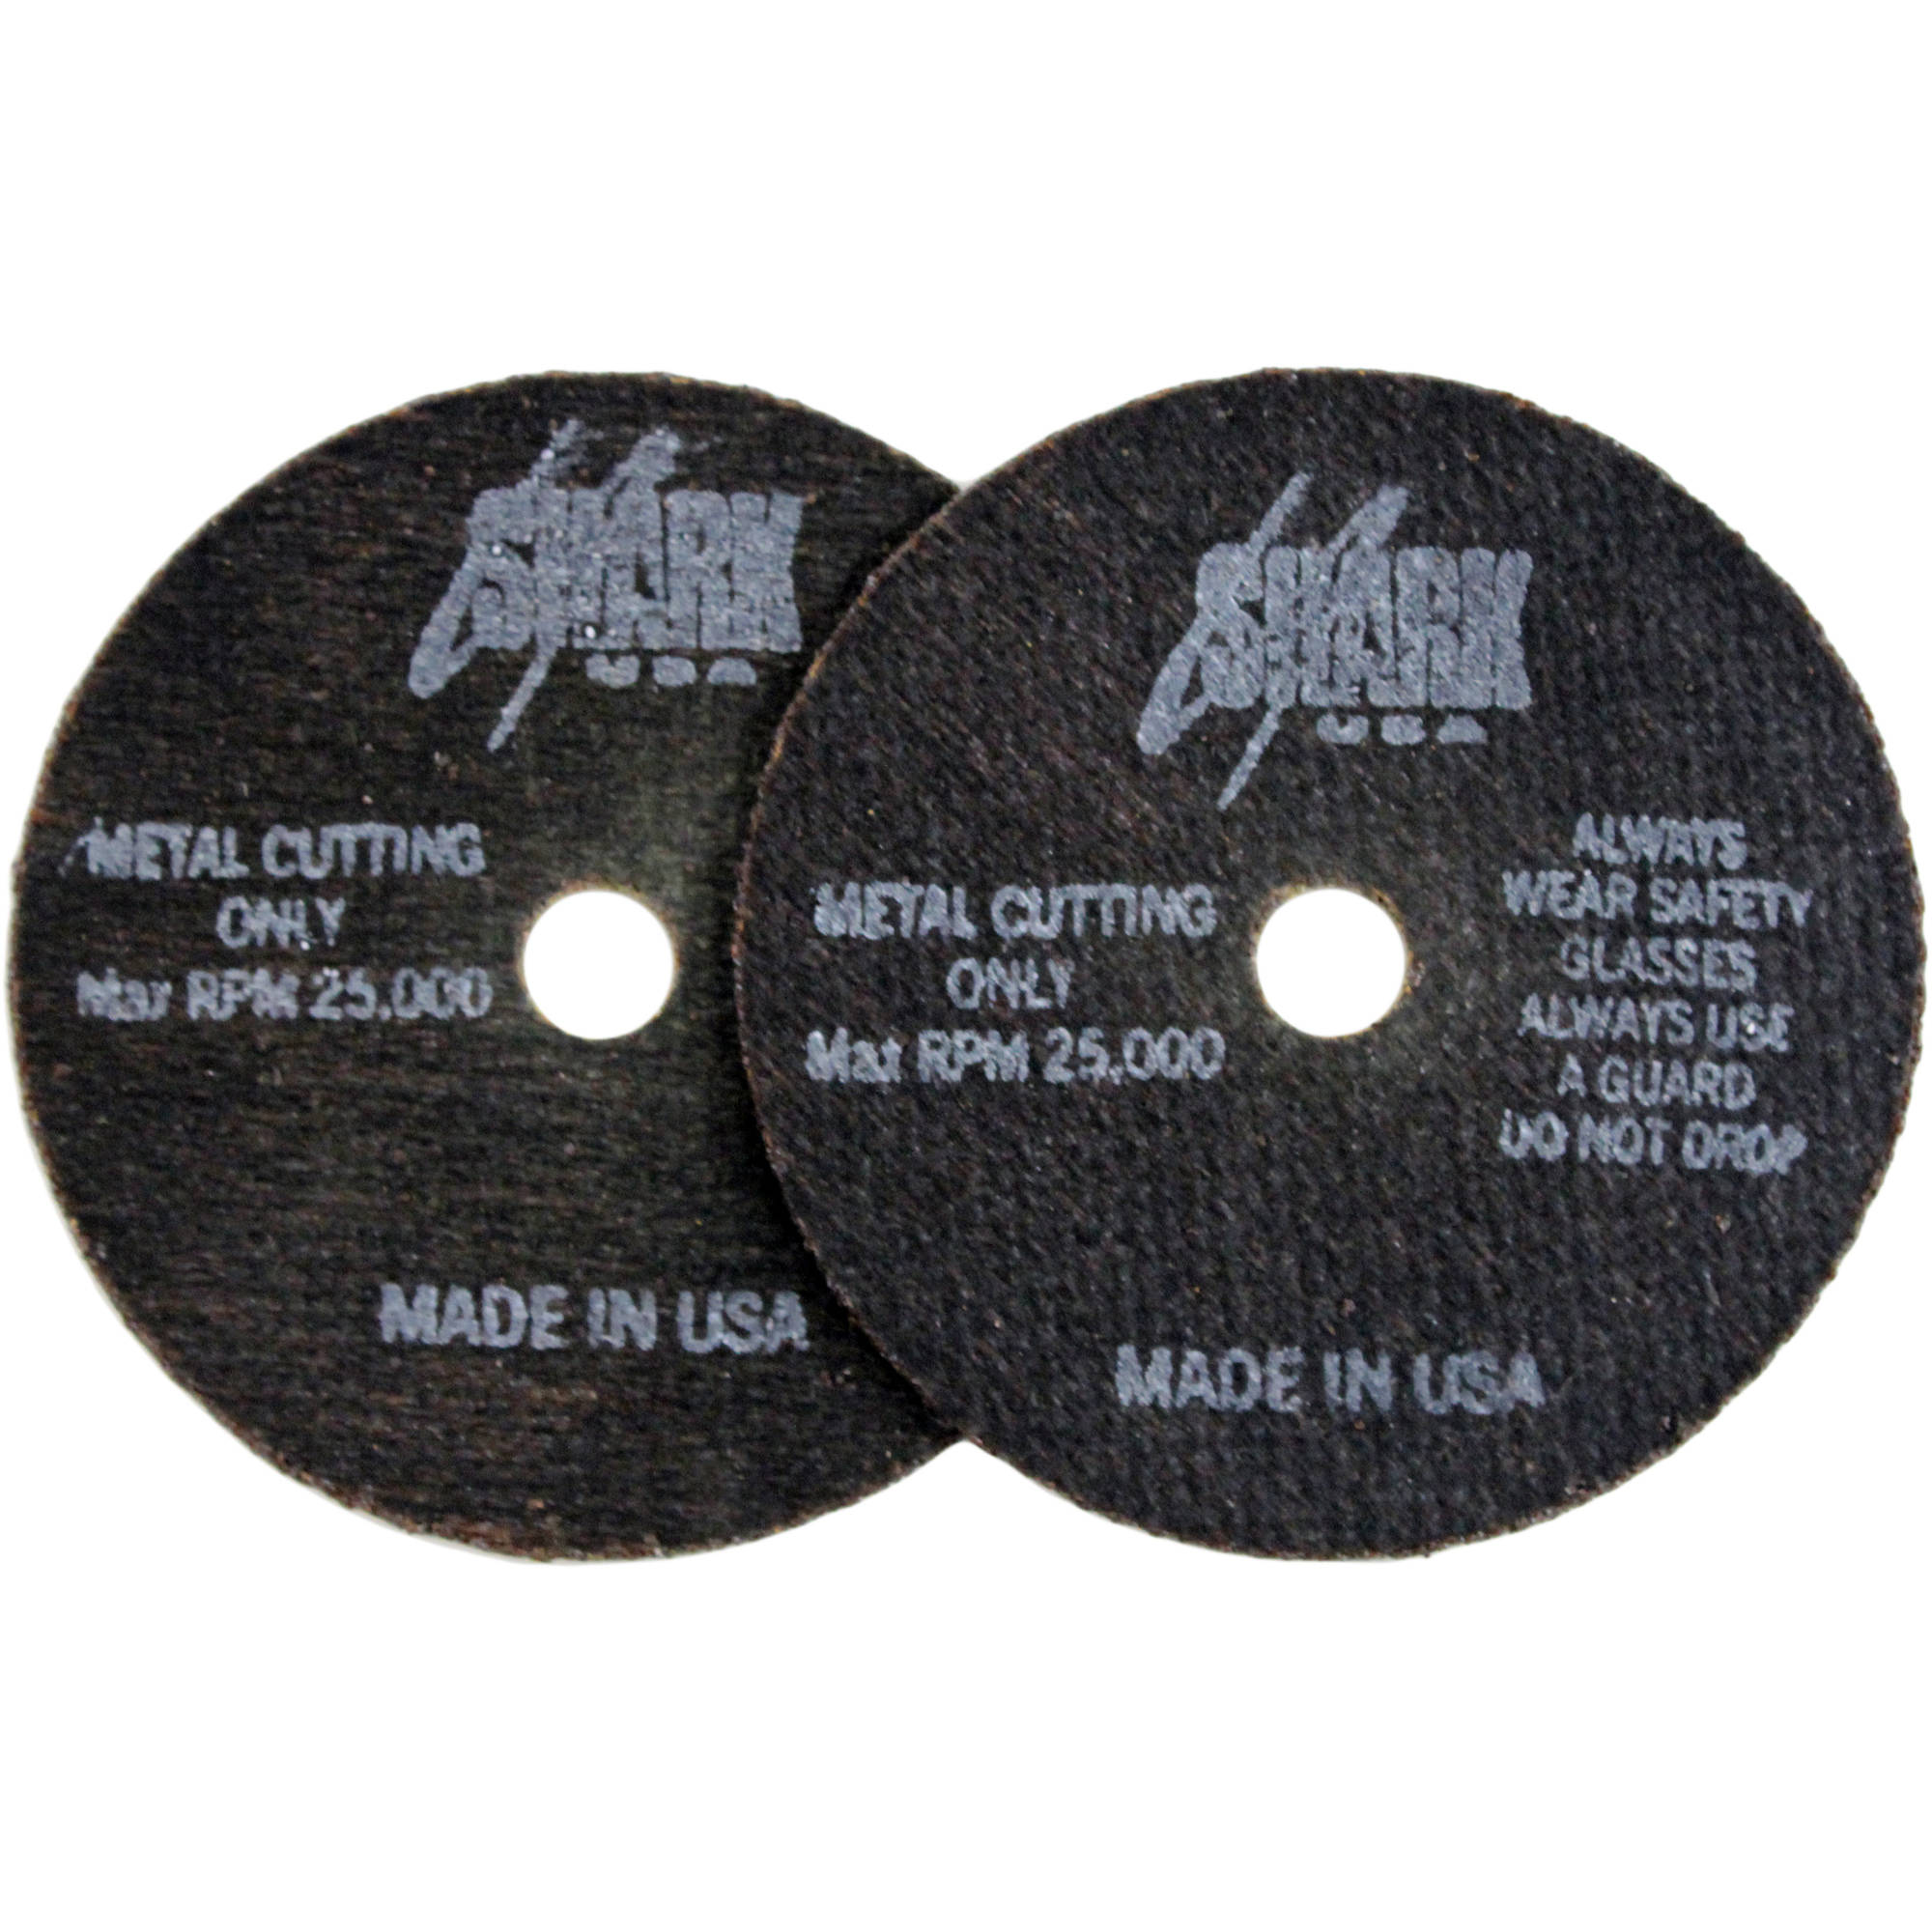 "Shark Cutoff Wheels, 3"" x 1/32"" x 3/8"", 50pk, 54 Grit"